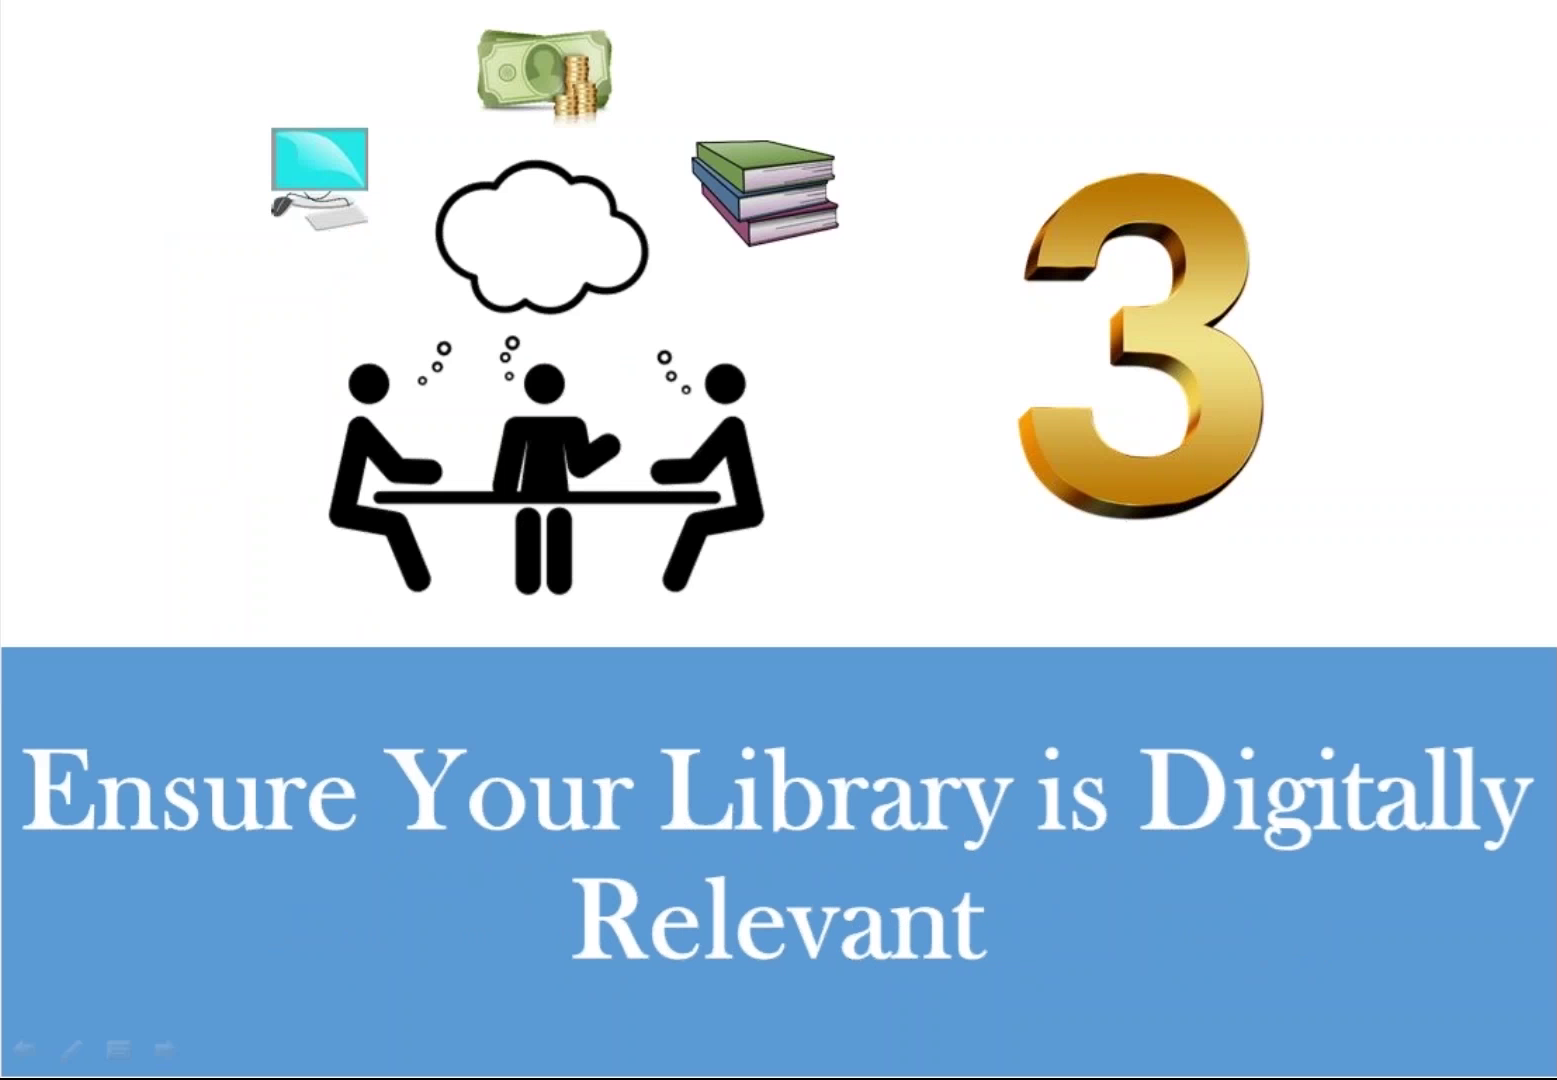 Ensure your library is digitally relevant